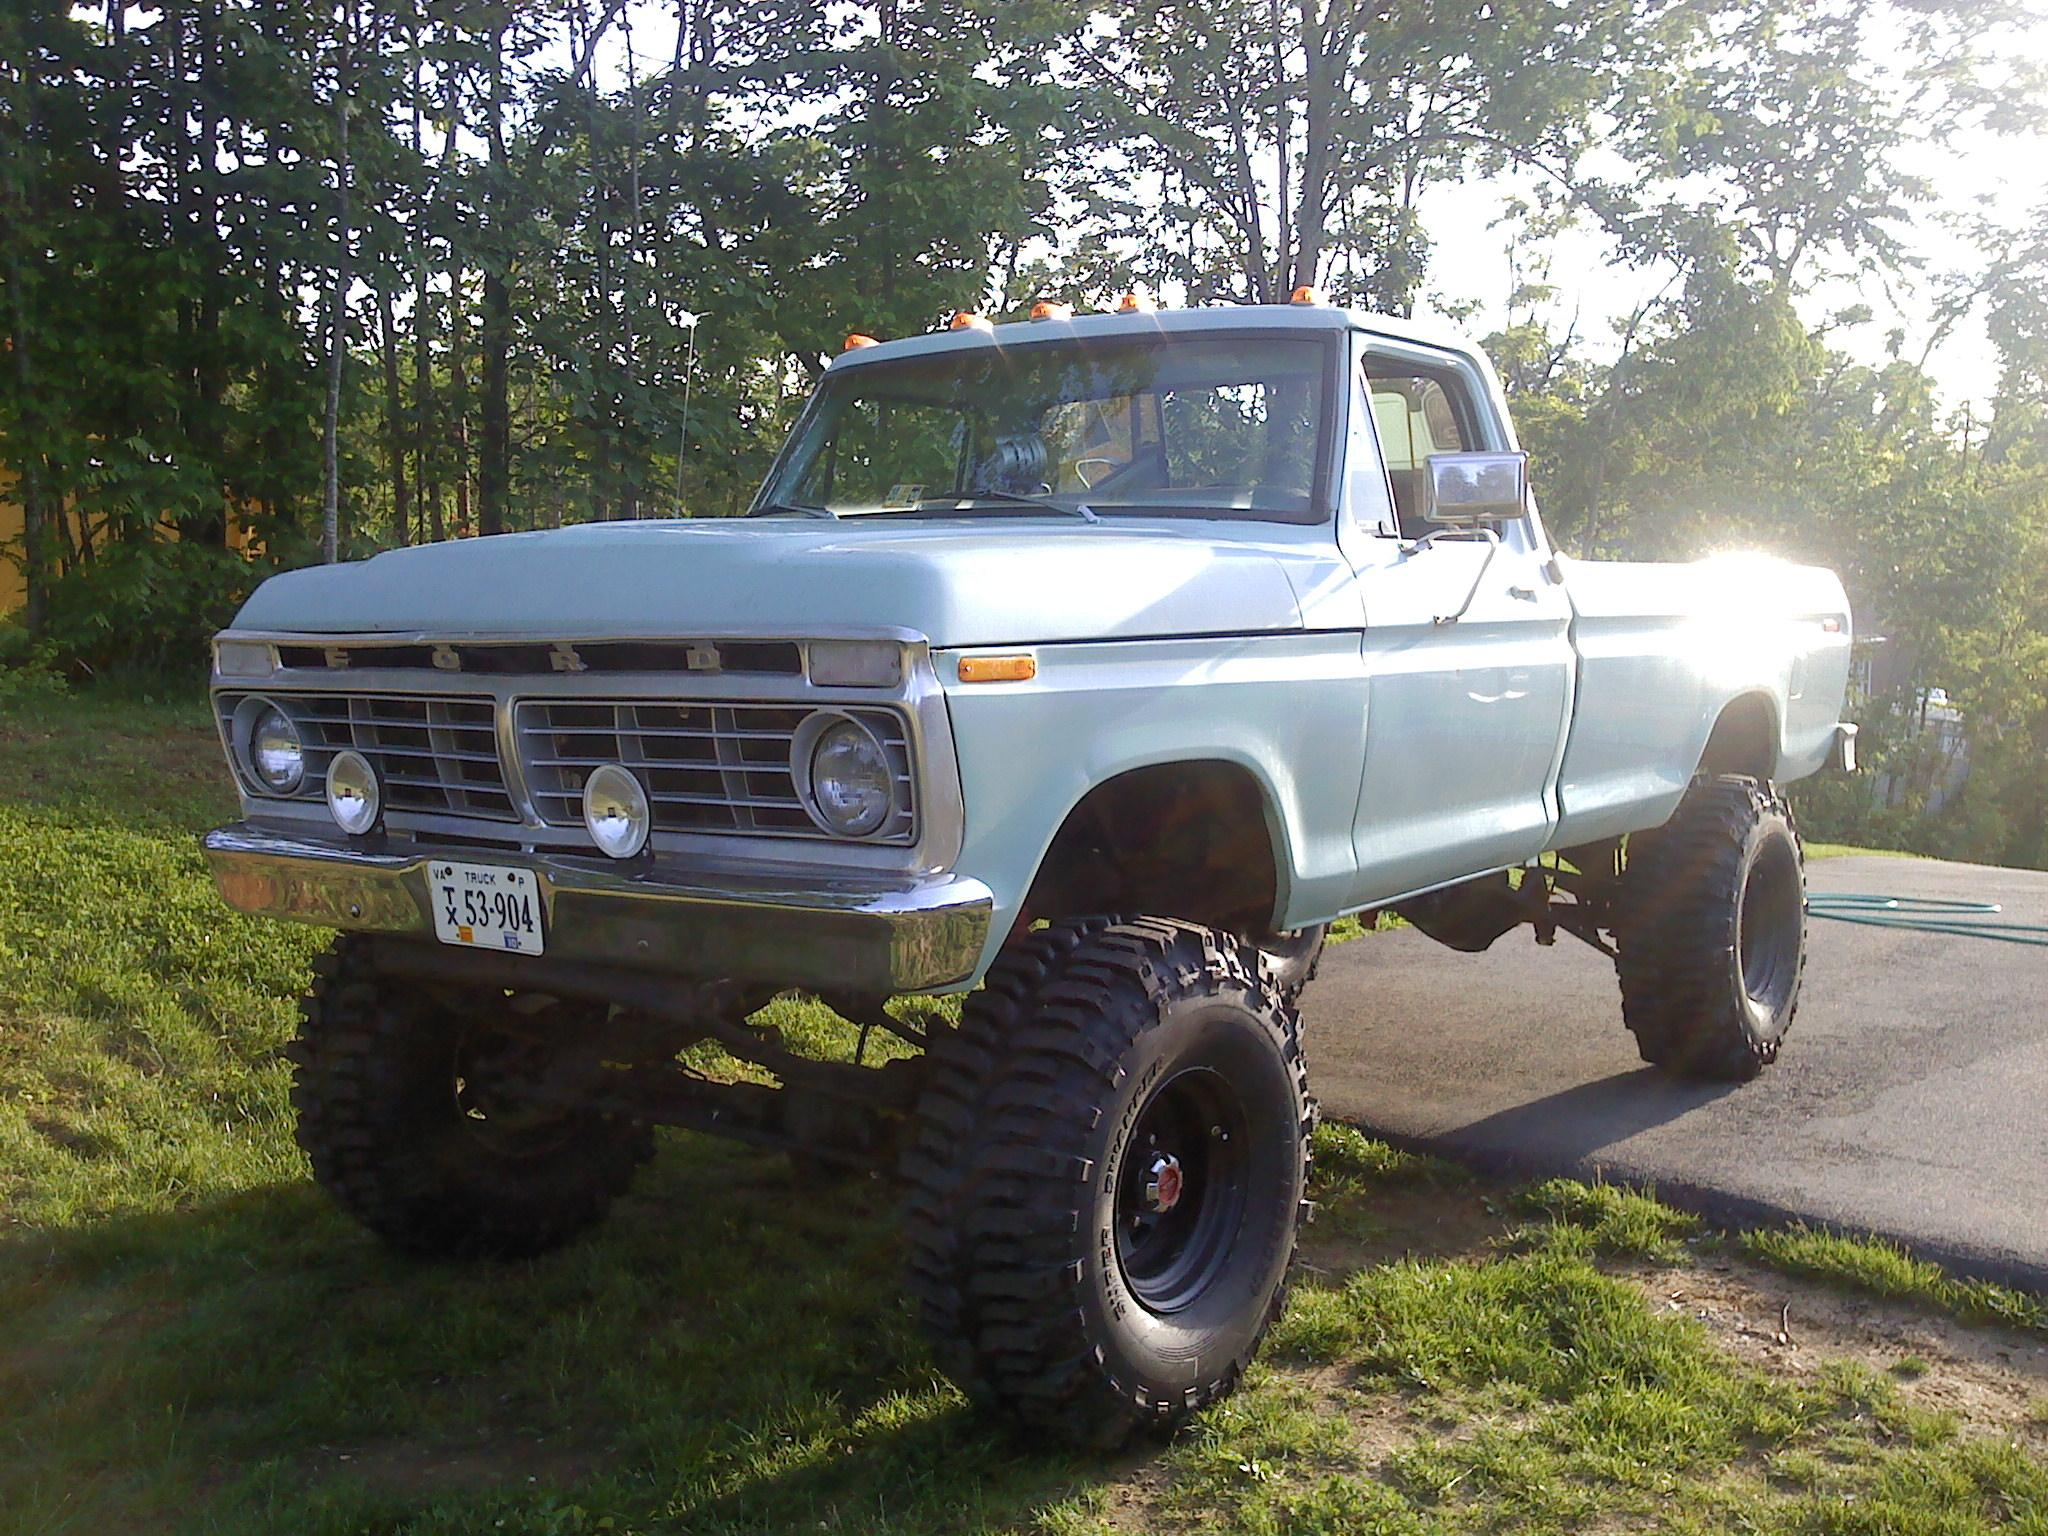 73f250 1973 Ford F250 Crew Cab Specs Photos Modification